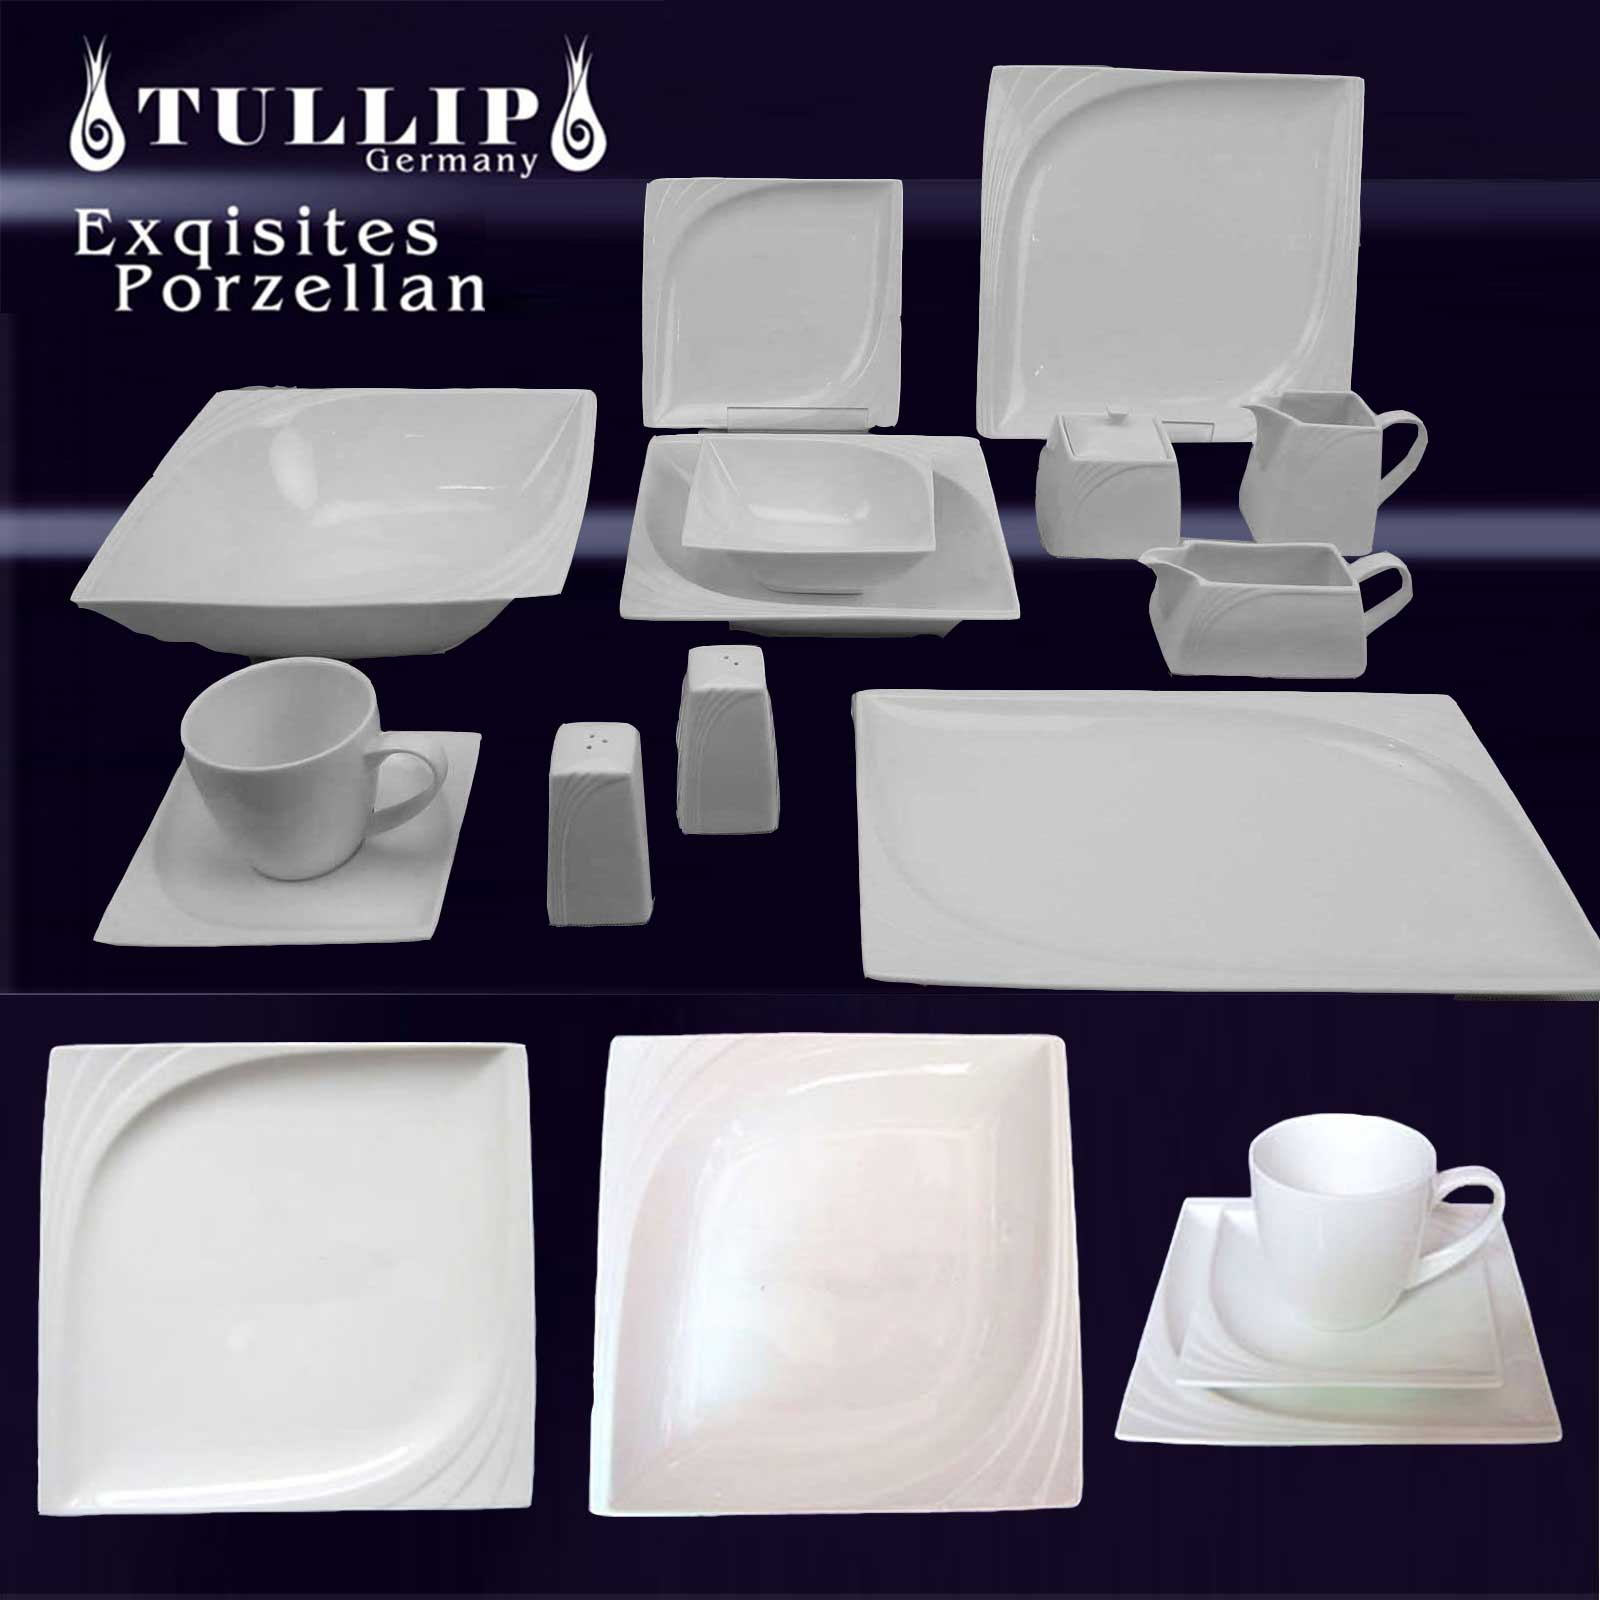 30 43 60 73 pcs vaiselle service de table complet assiette de porcelaine tullip ebay. Black Bedroom Furniture Sets. Home Design Ideas